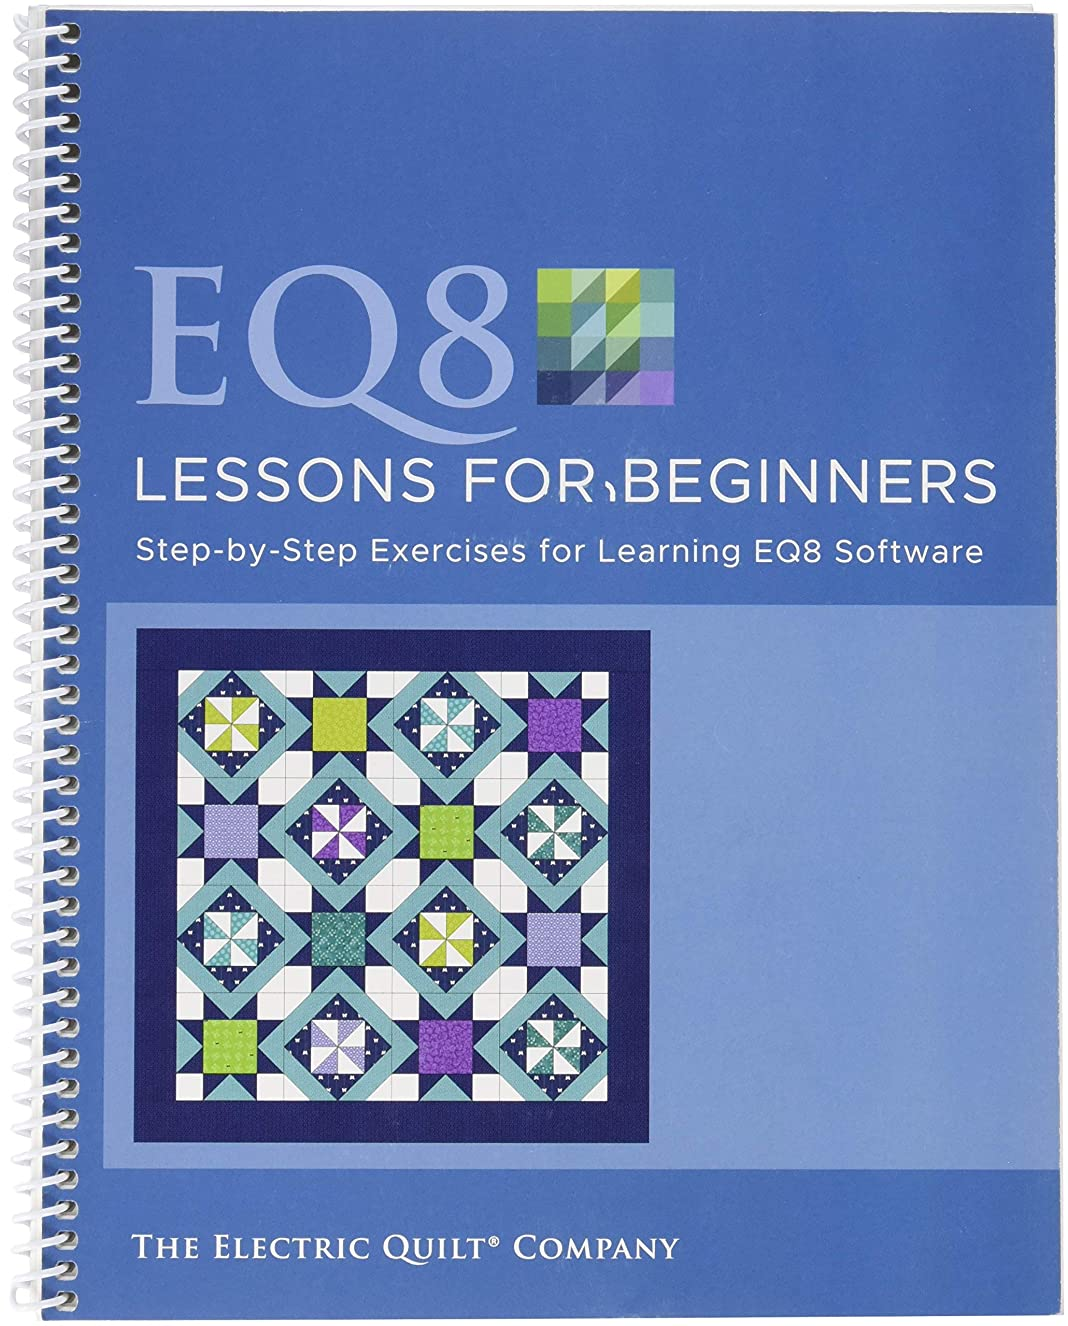 Electric Quilt B8LESSON Lessons for Beginners Book ggpgyslsli1565